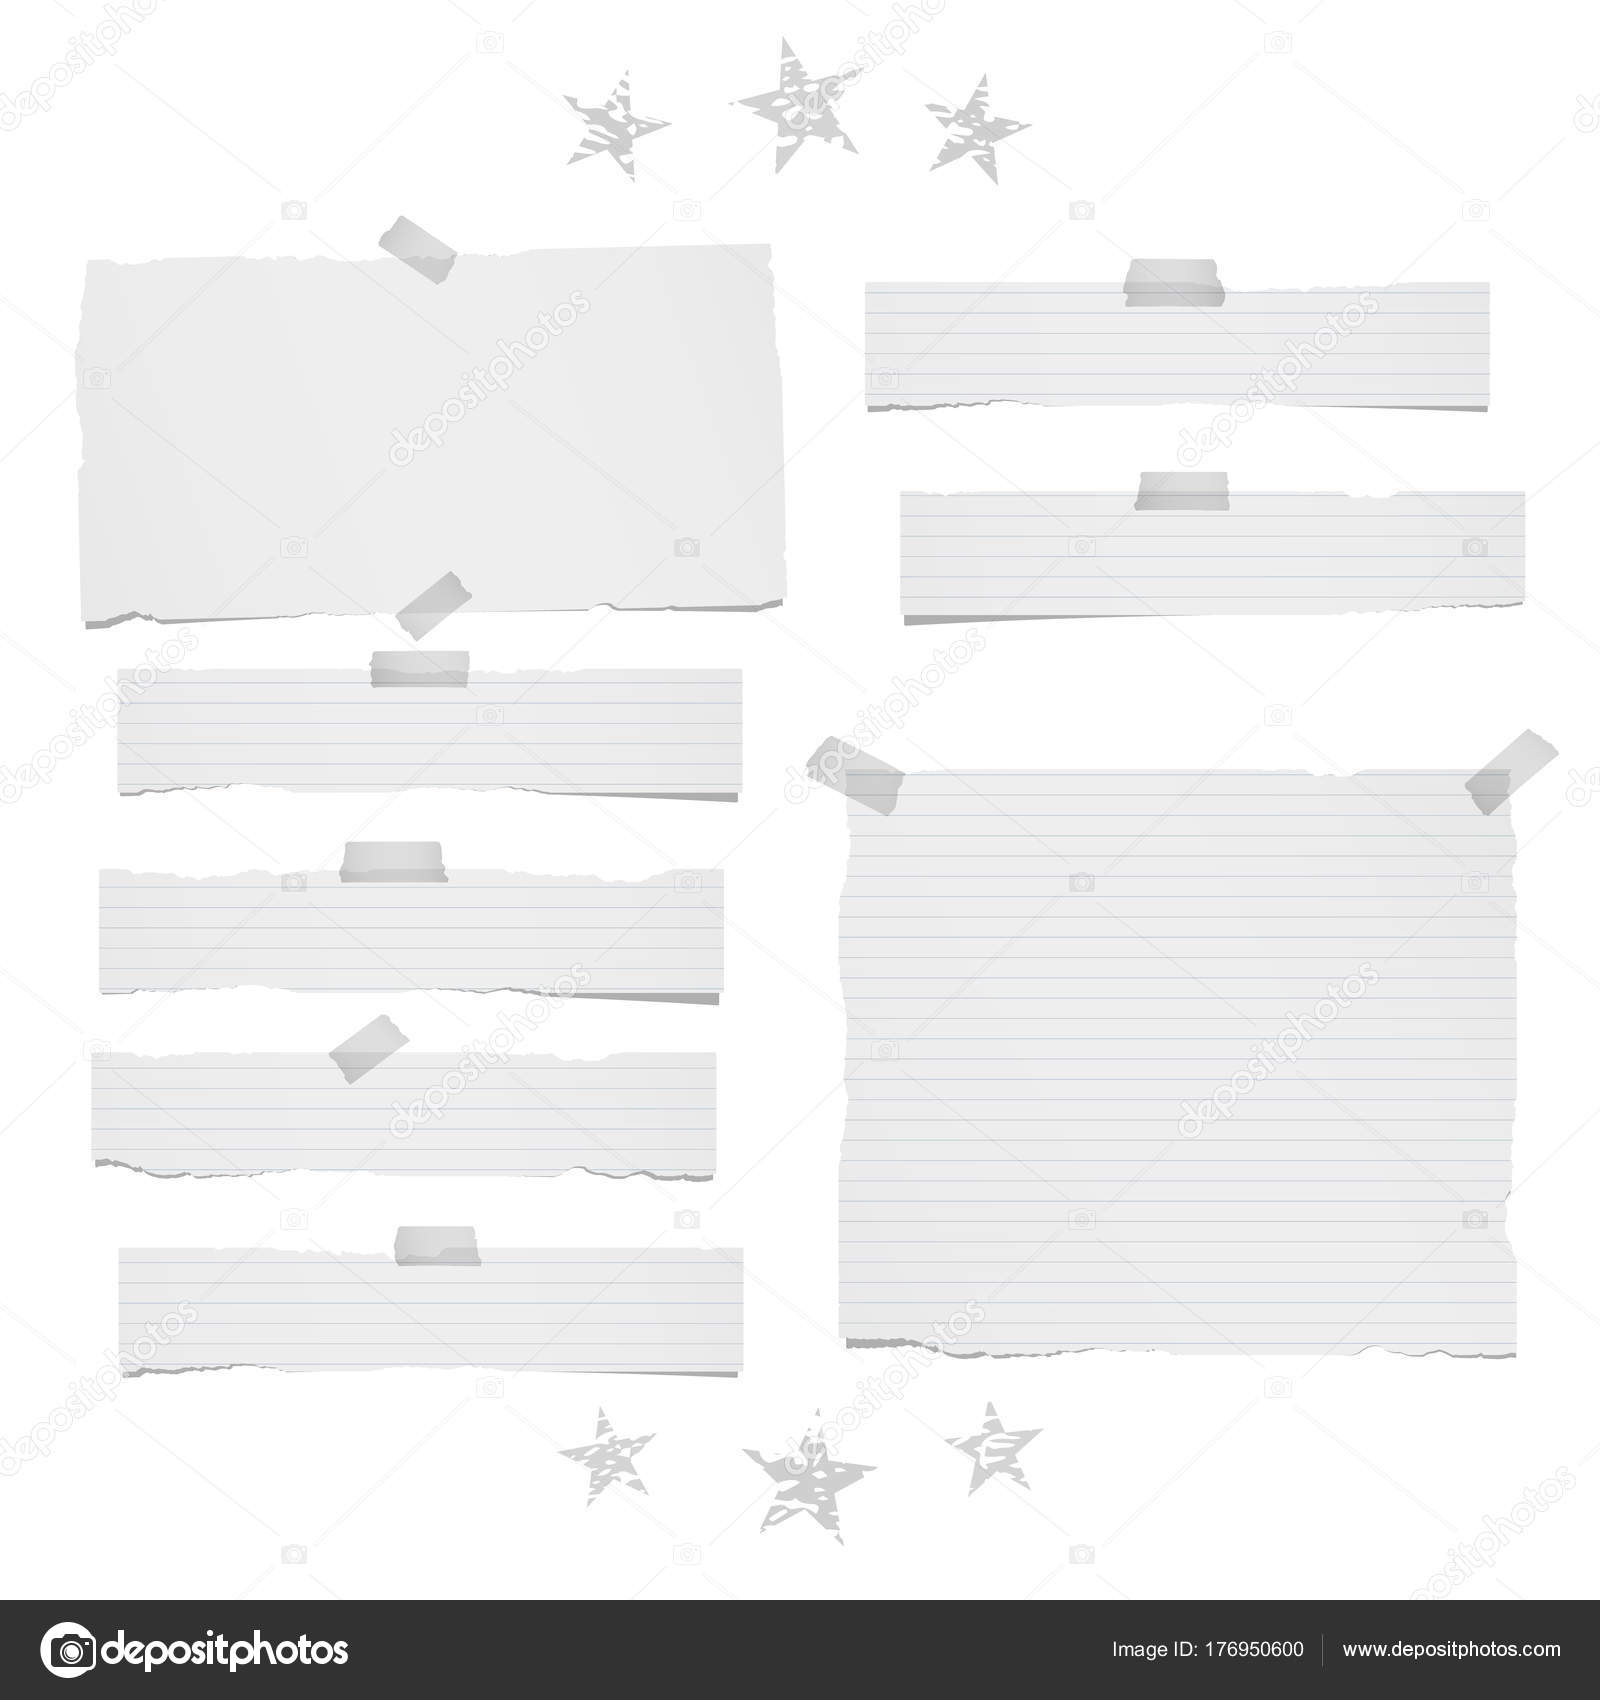 ripped lined and blank note, notebook paper strips, sheets for text